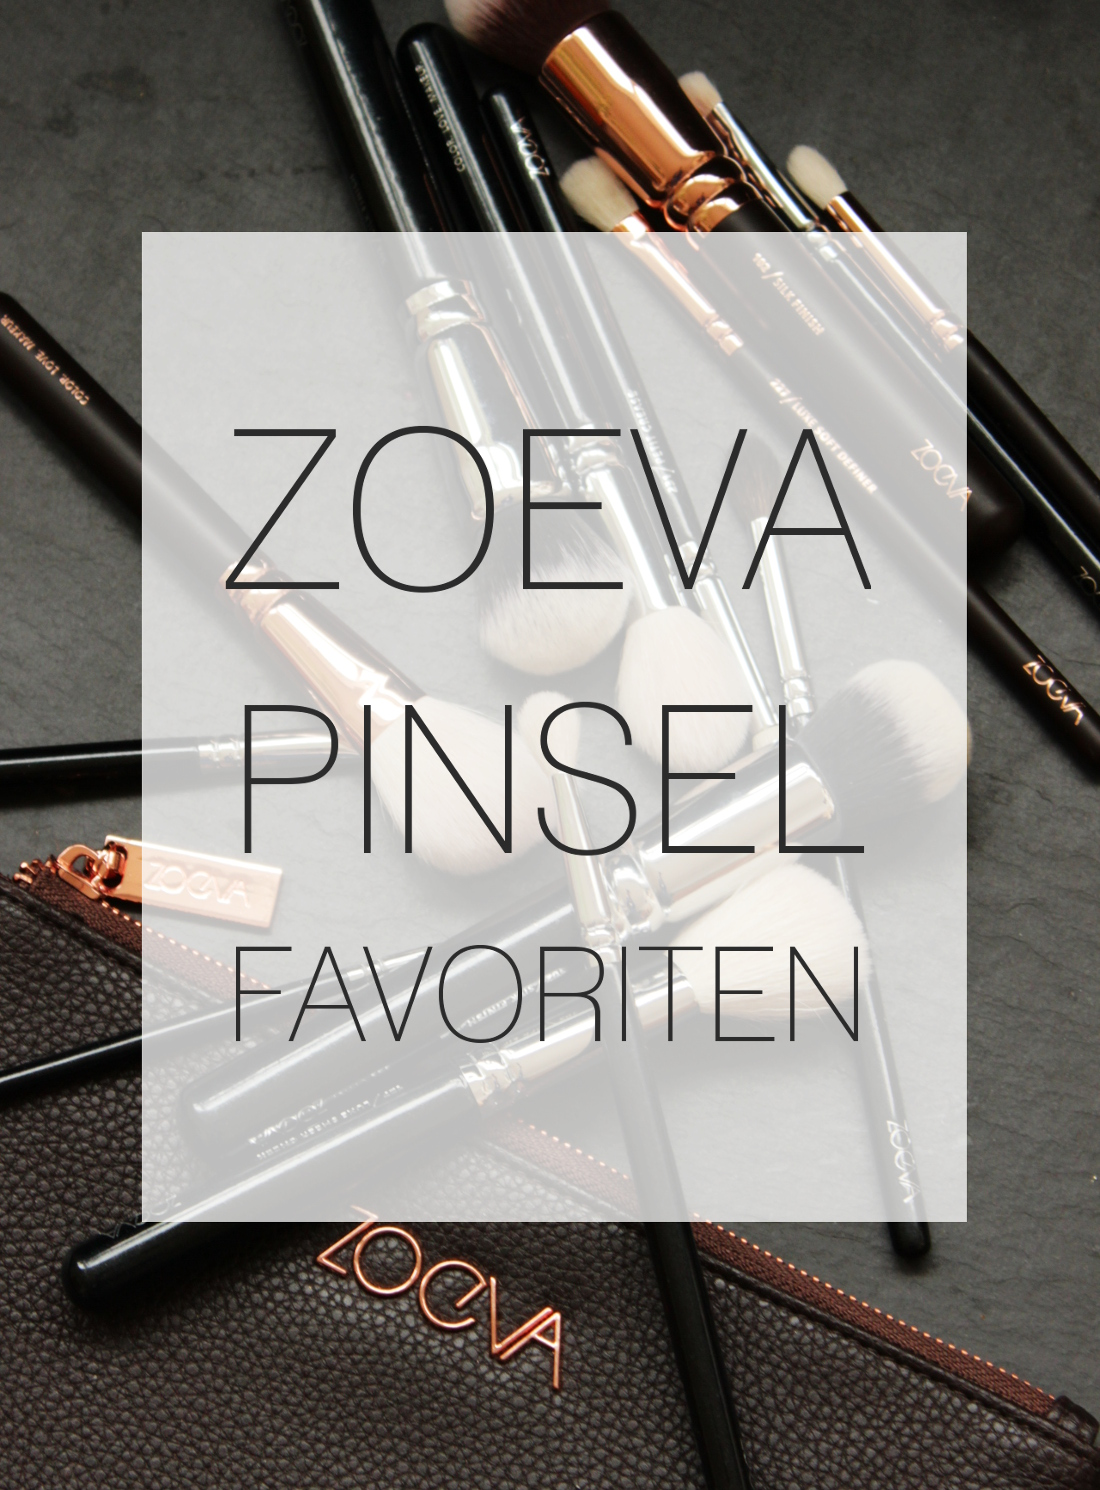 Zoeva Pinsel Favoriten